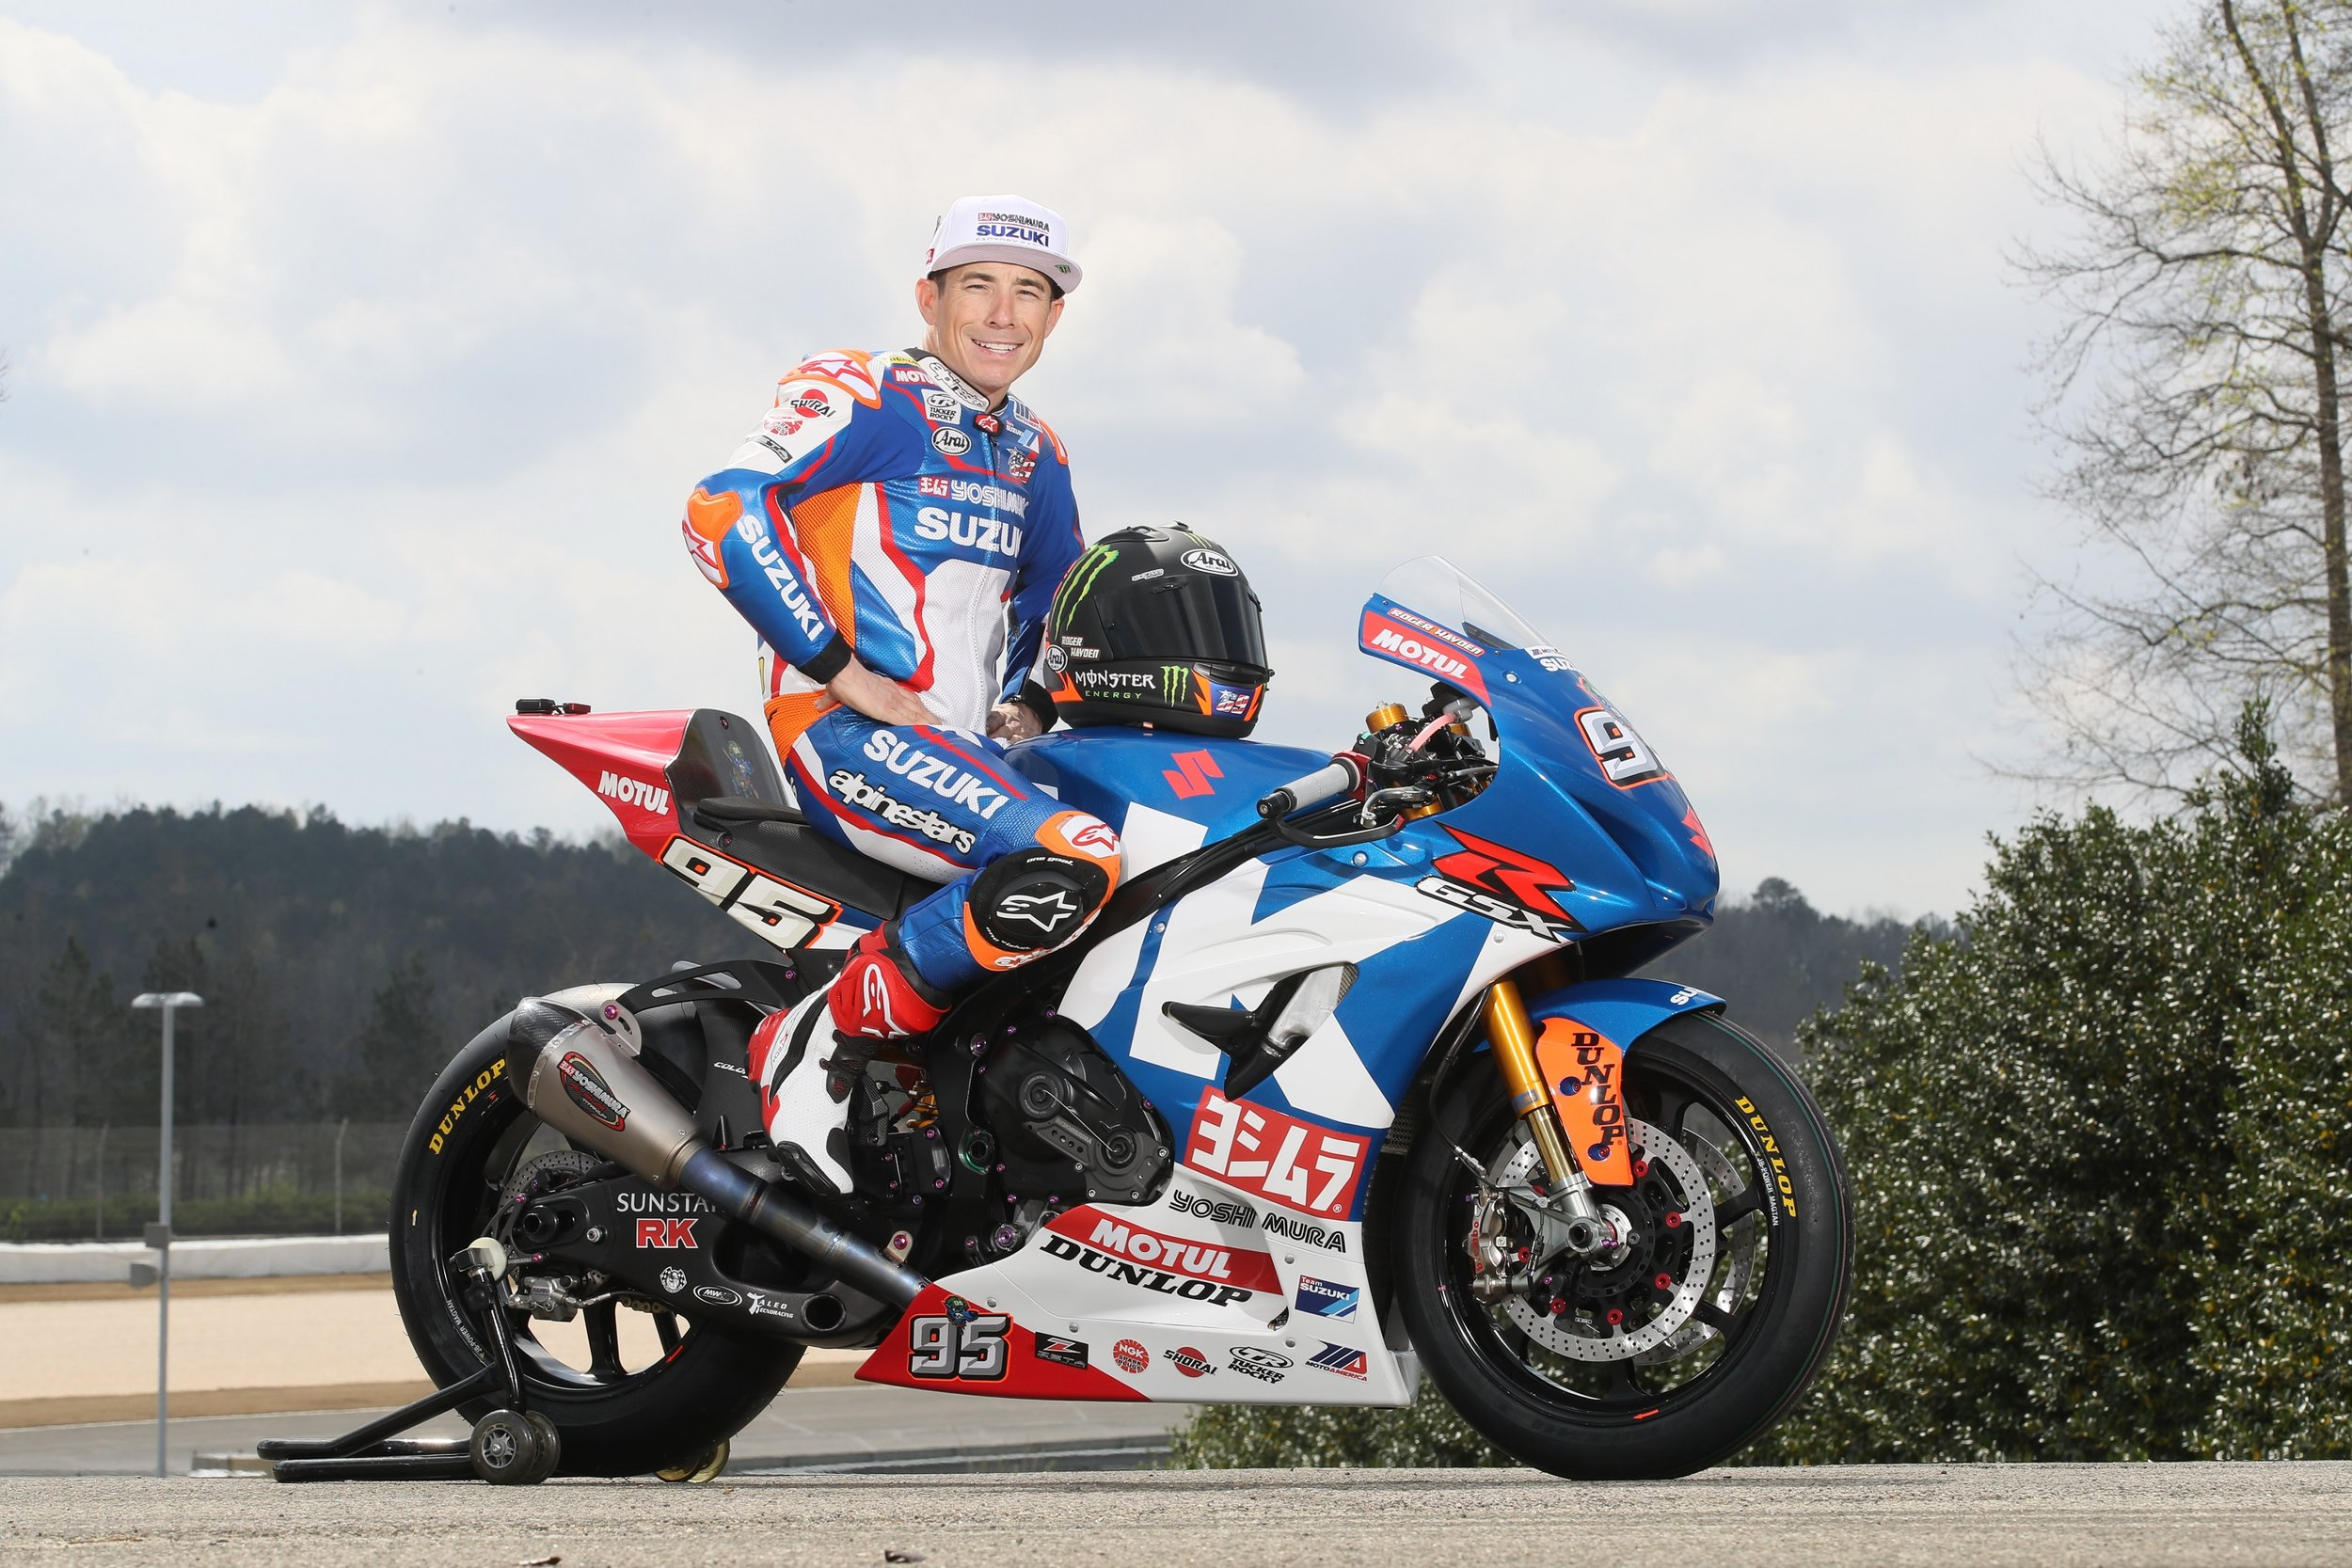 Roger Hayden was the MotoAmerica Superbike Superpole master in 2017, winning a series-leading seven Superpoles, in addition to his three race wins. Hayden was also a title contender all year. This year the popular Kentuckian is hoping to lift the championship trophy at the end of the 2018 season. (Brian J. Nelson photo)